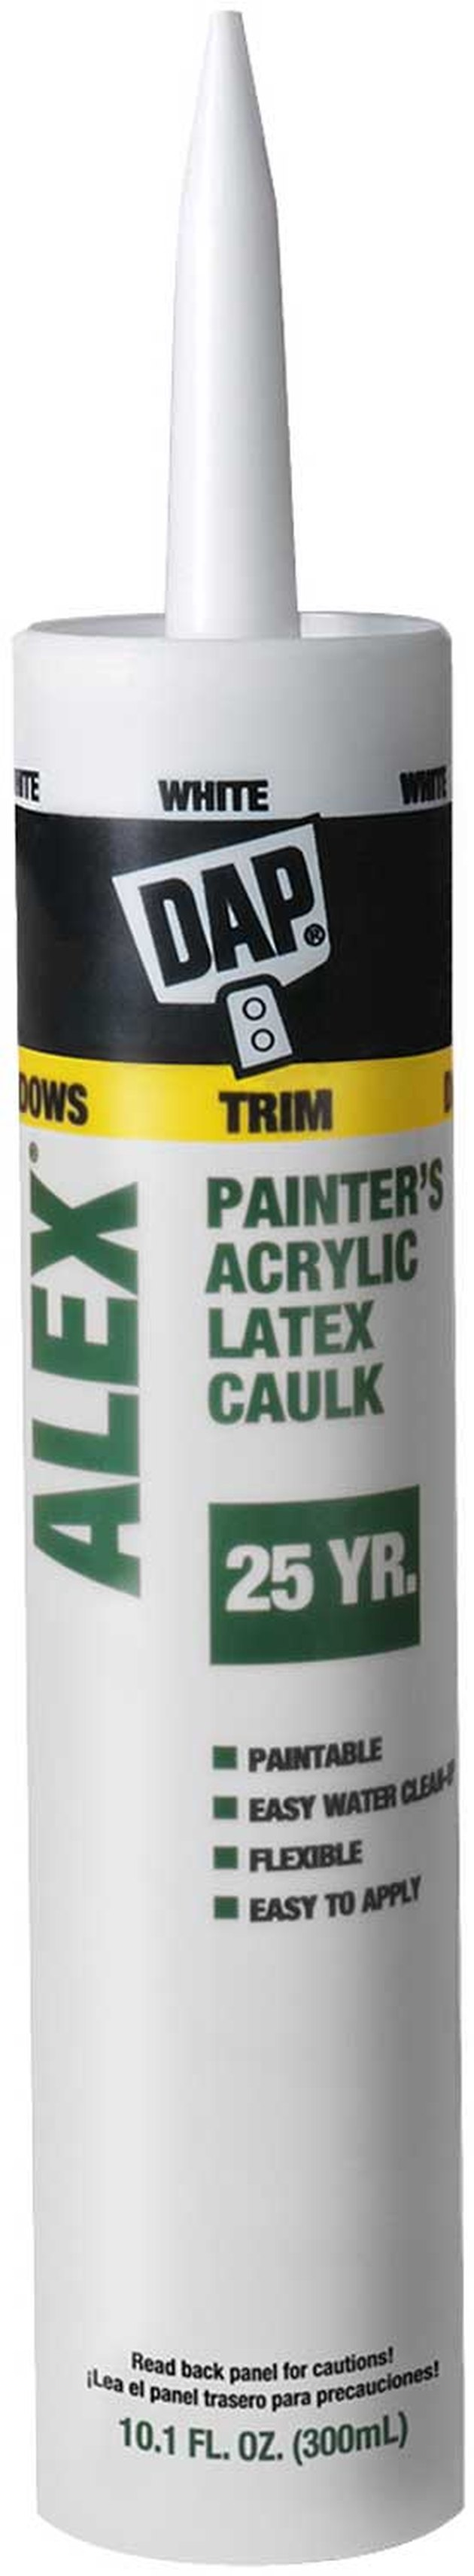 acrylic painter's caulk